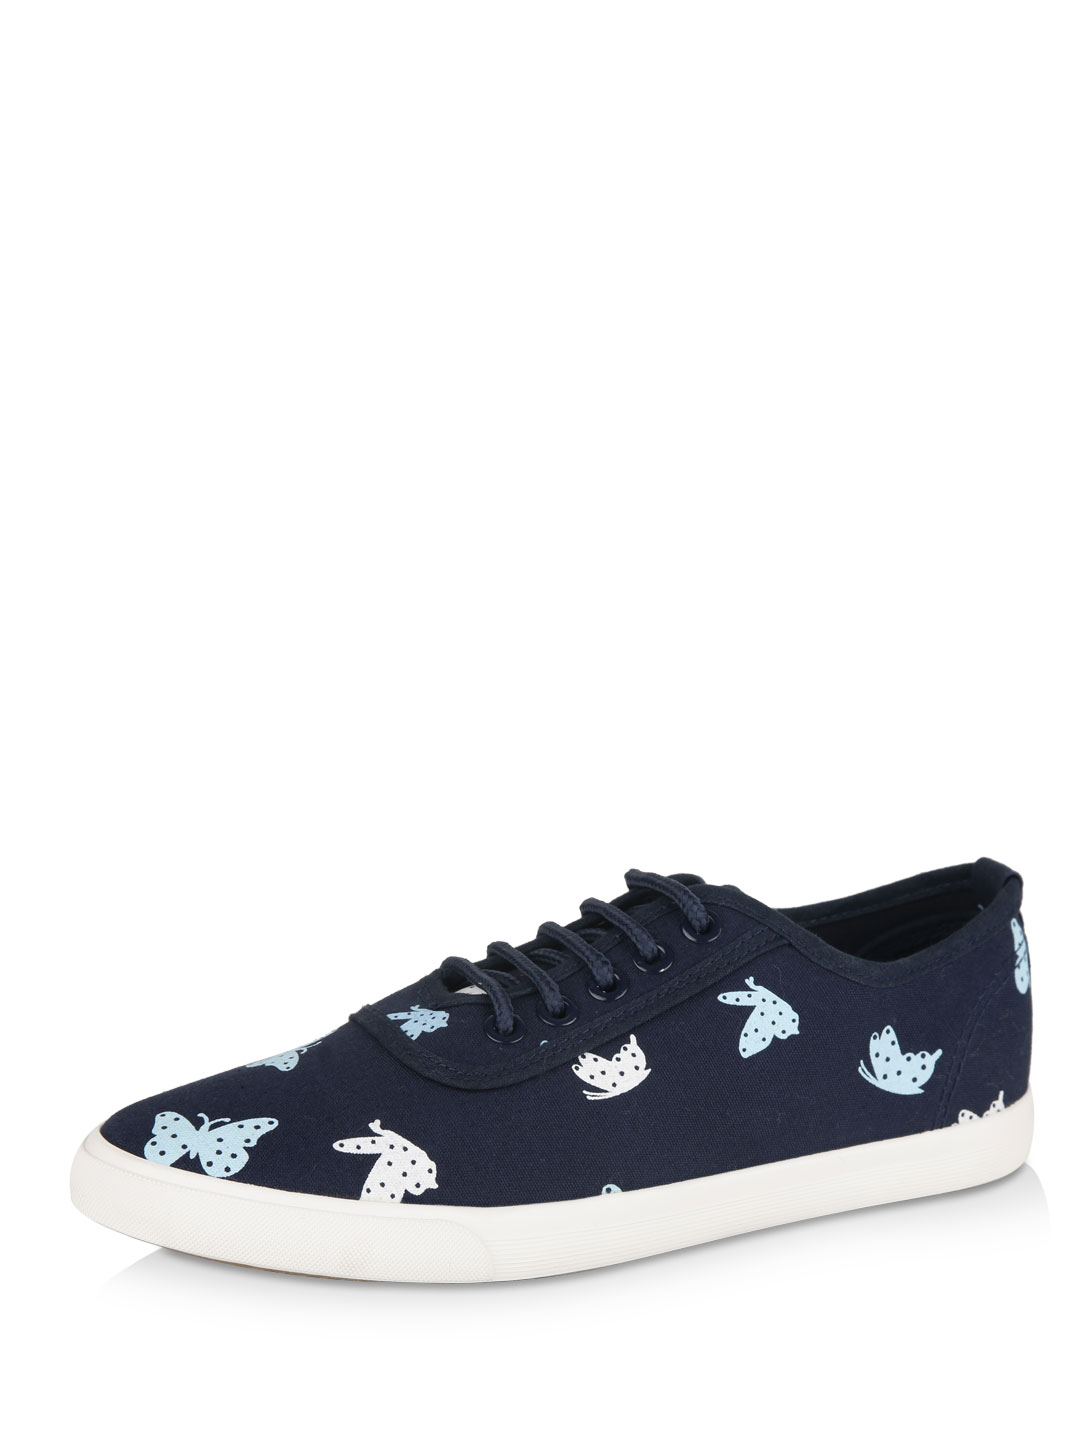 My Foot Couture Super dark blue wash Butterfly Print Lace Up Shoes 1